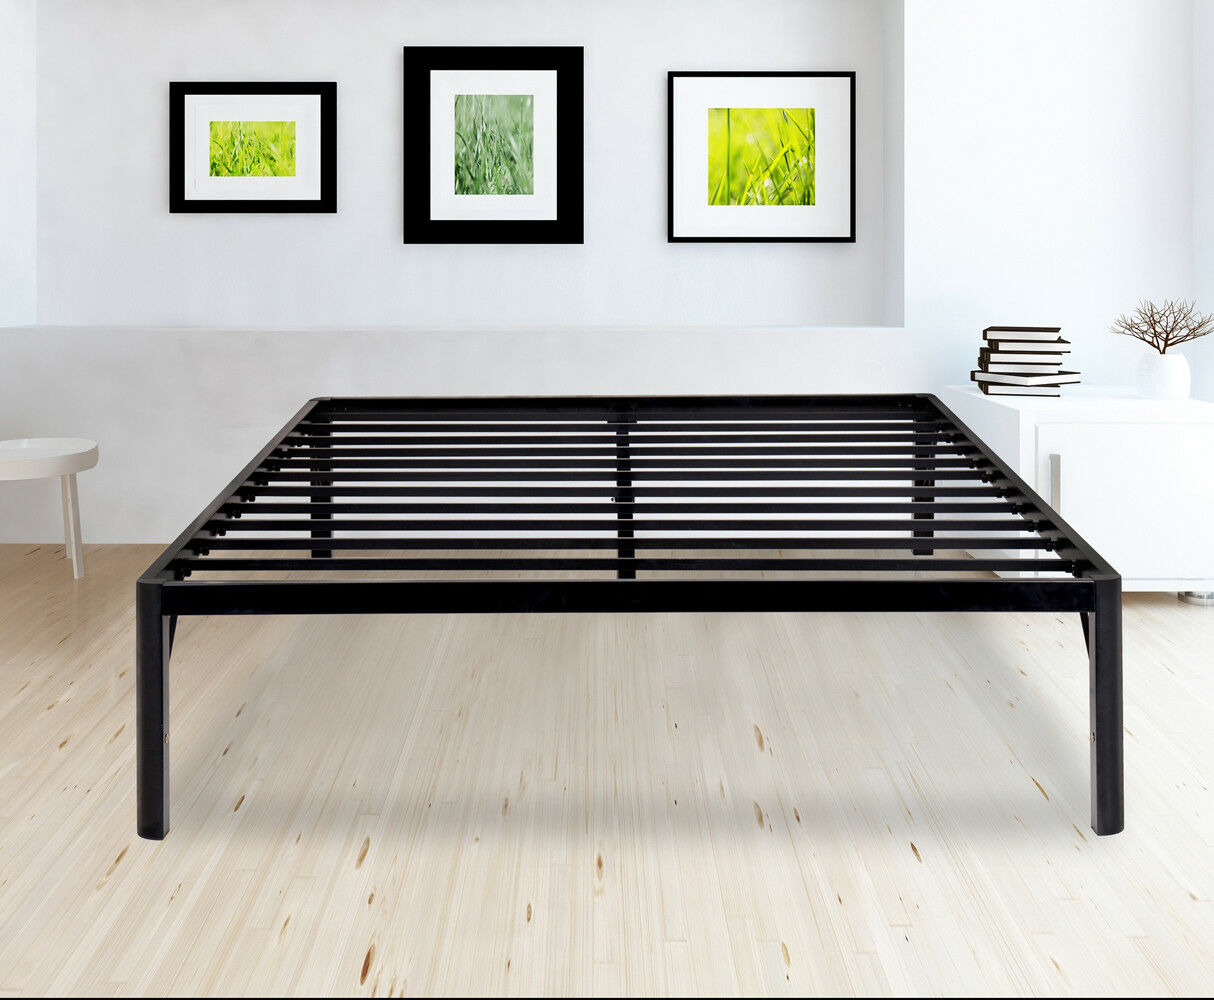 SLEEPLACE Dura Metal Steel Slate Bed Frame - S3000 Twin,Full